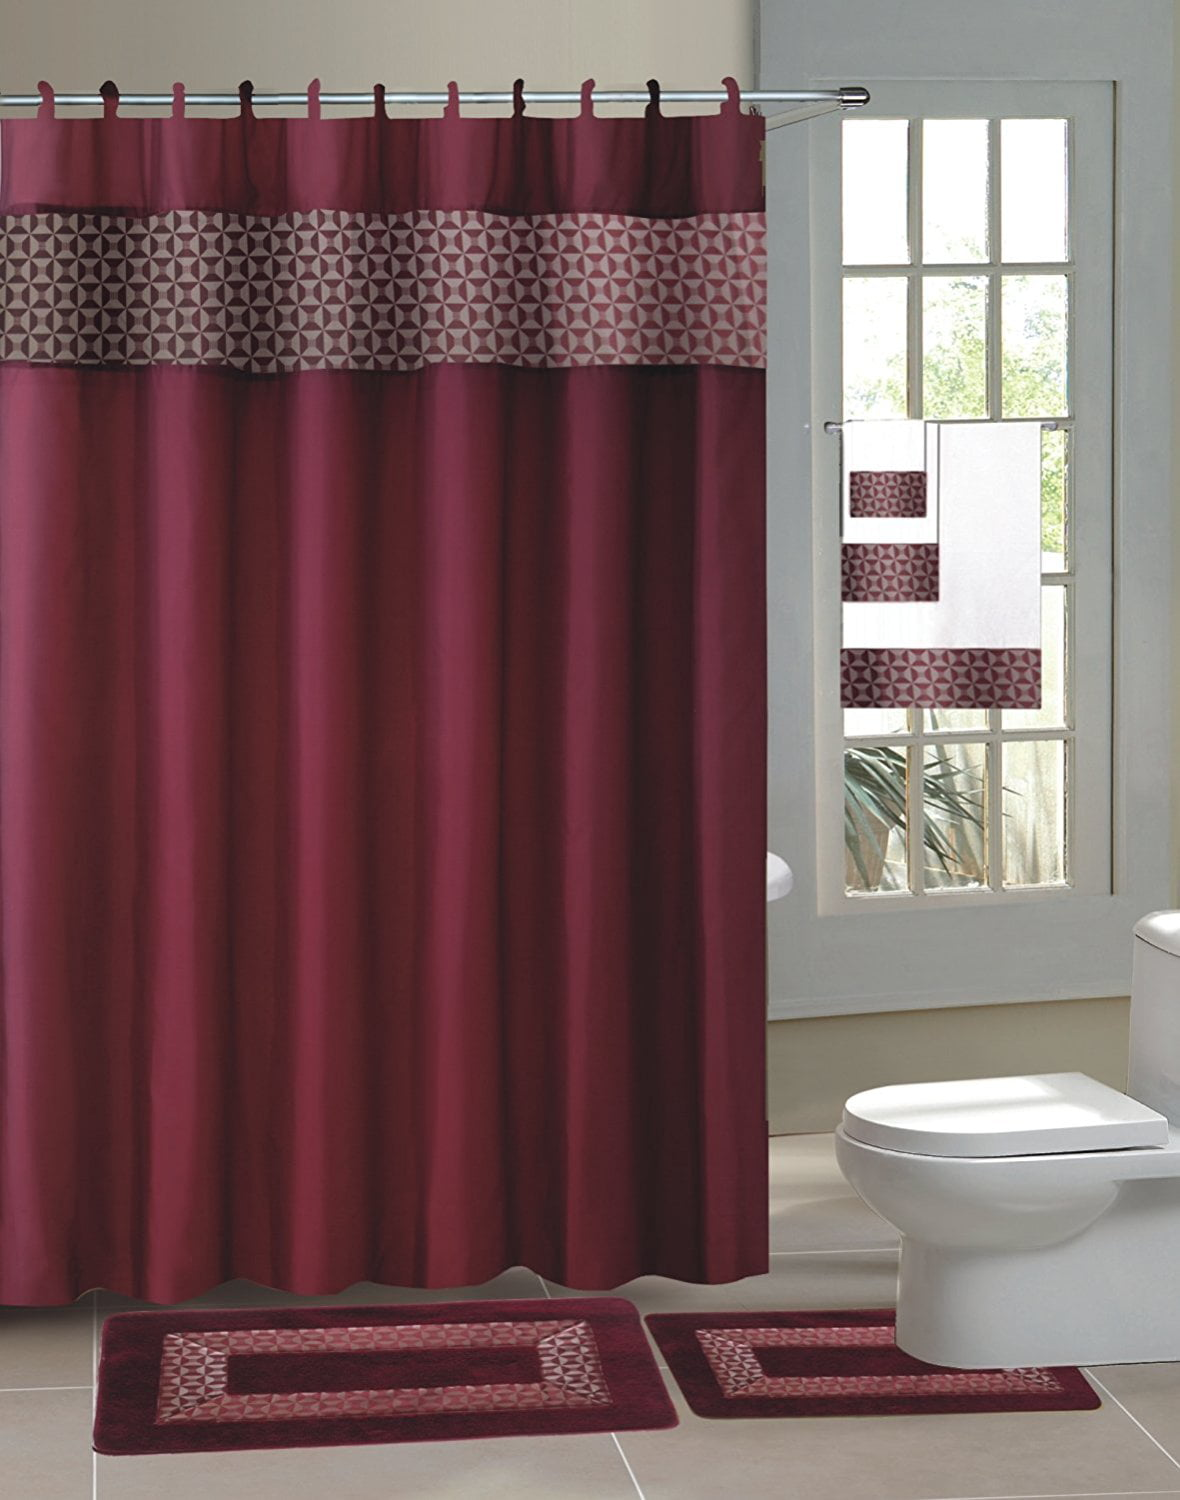 Burgundy Fresco 15 Piece Hotel Bathroom